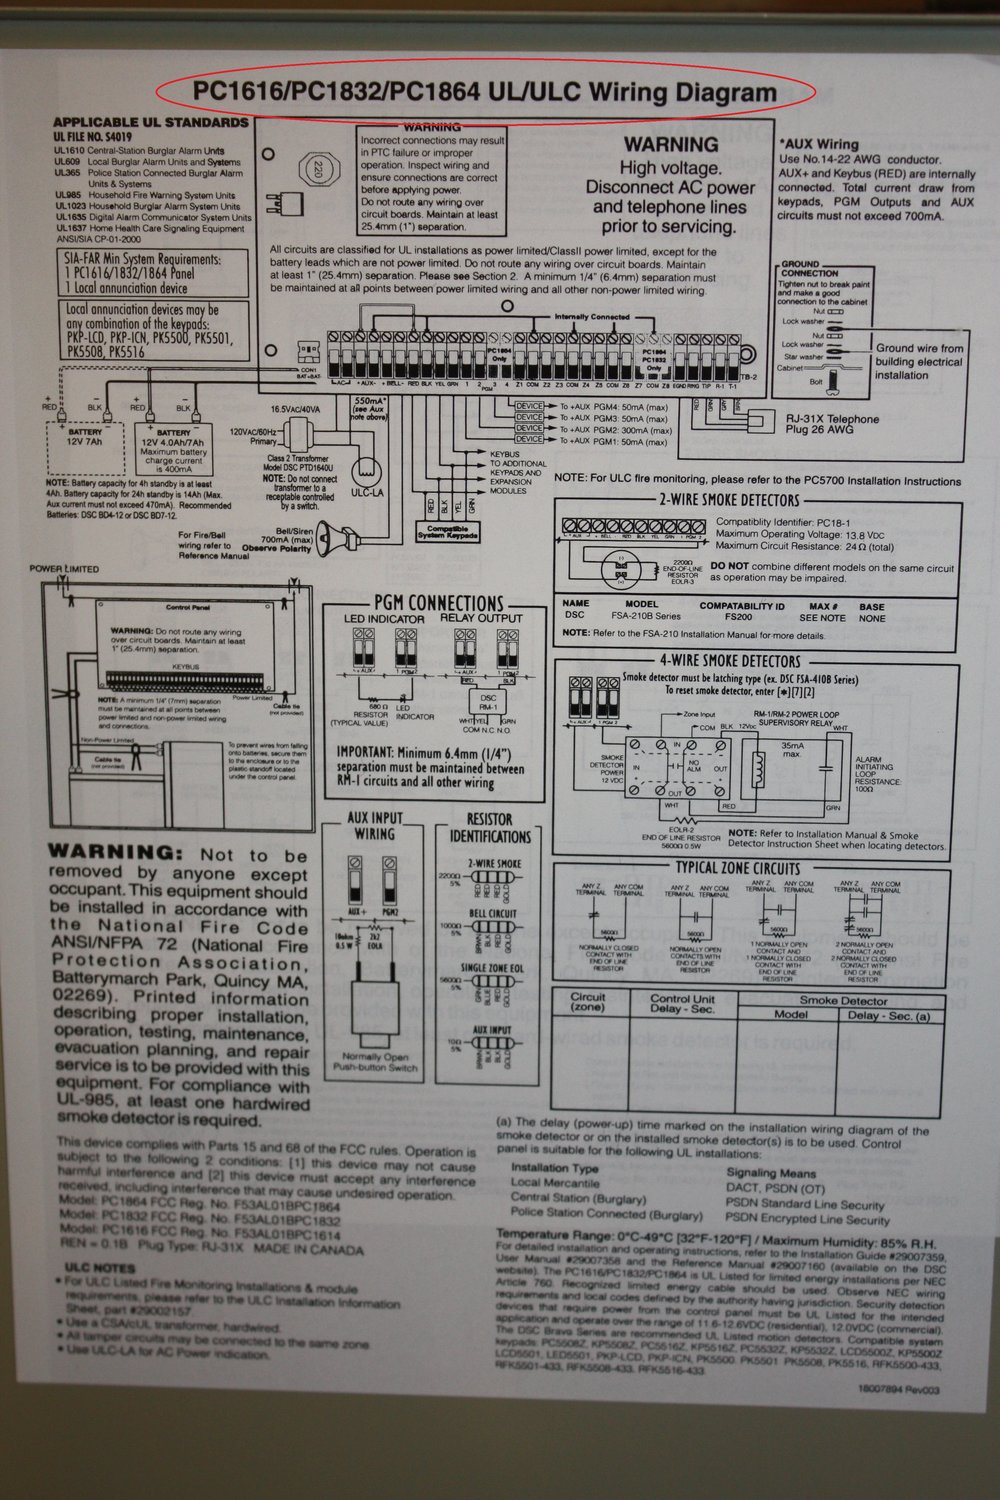 5508 dsc led nca alarms nashville schematic for the 5508 dsc led alarm system showing the serial number location nca alarms asfbconference2016 Image collections